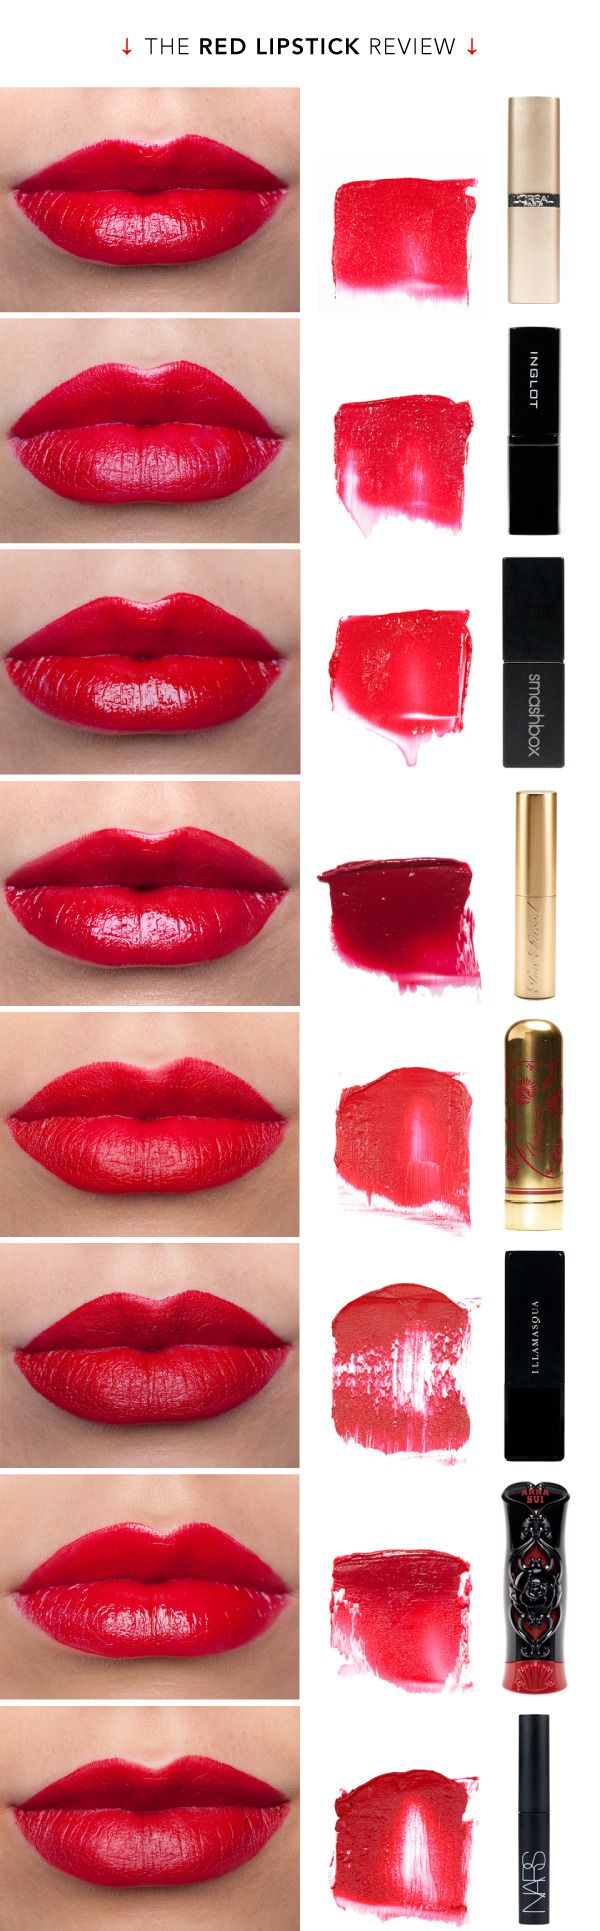 Sexy red lips is no walk in the park soany choices whats ur fav? The Red Lipstick Review